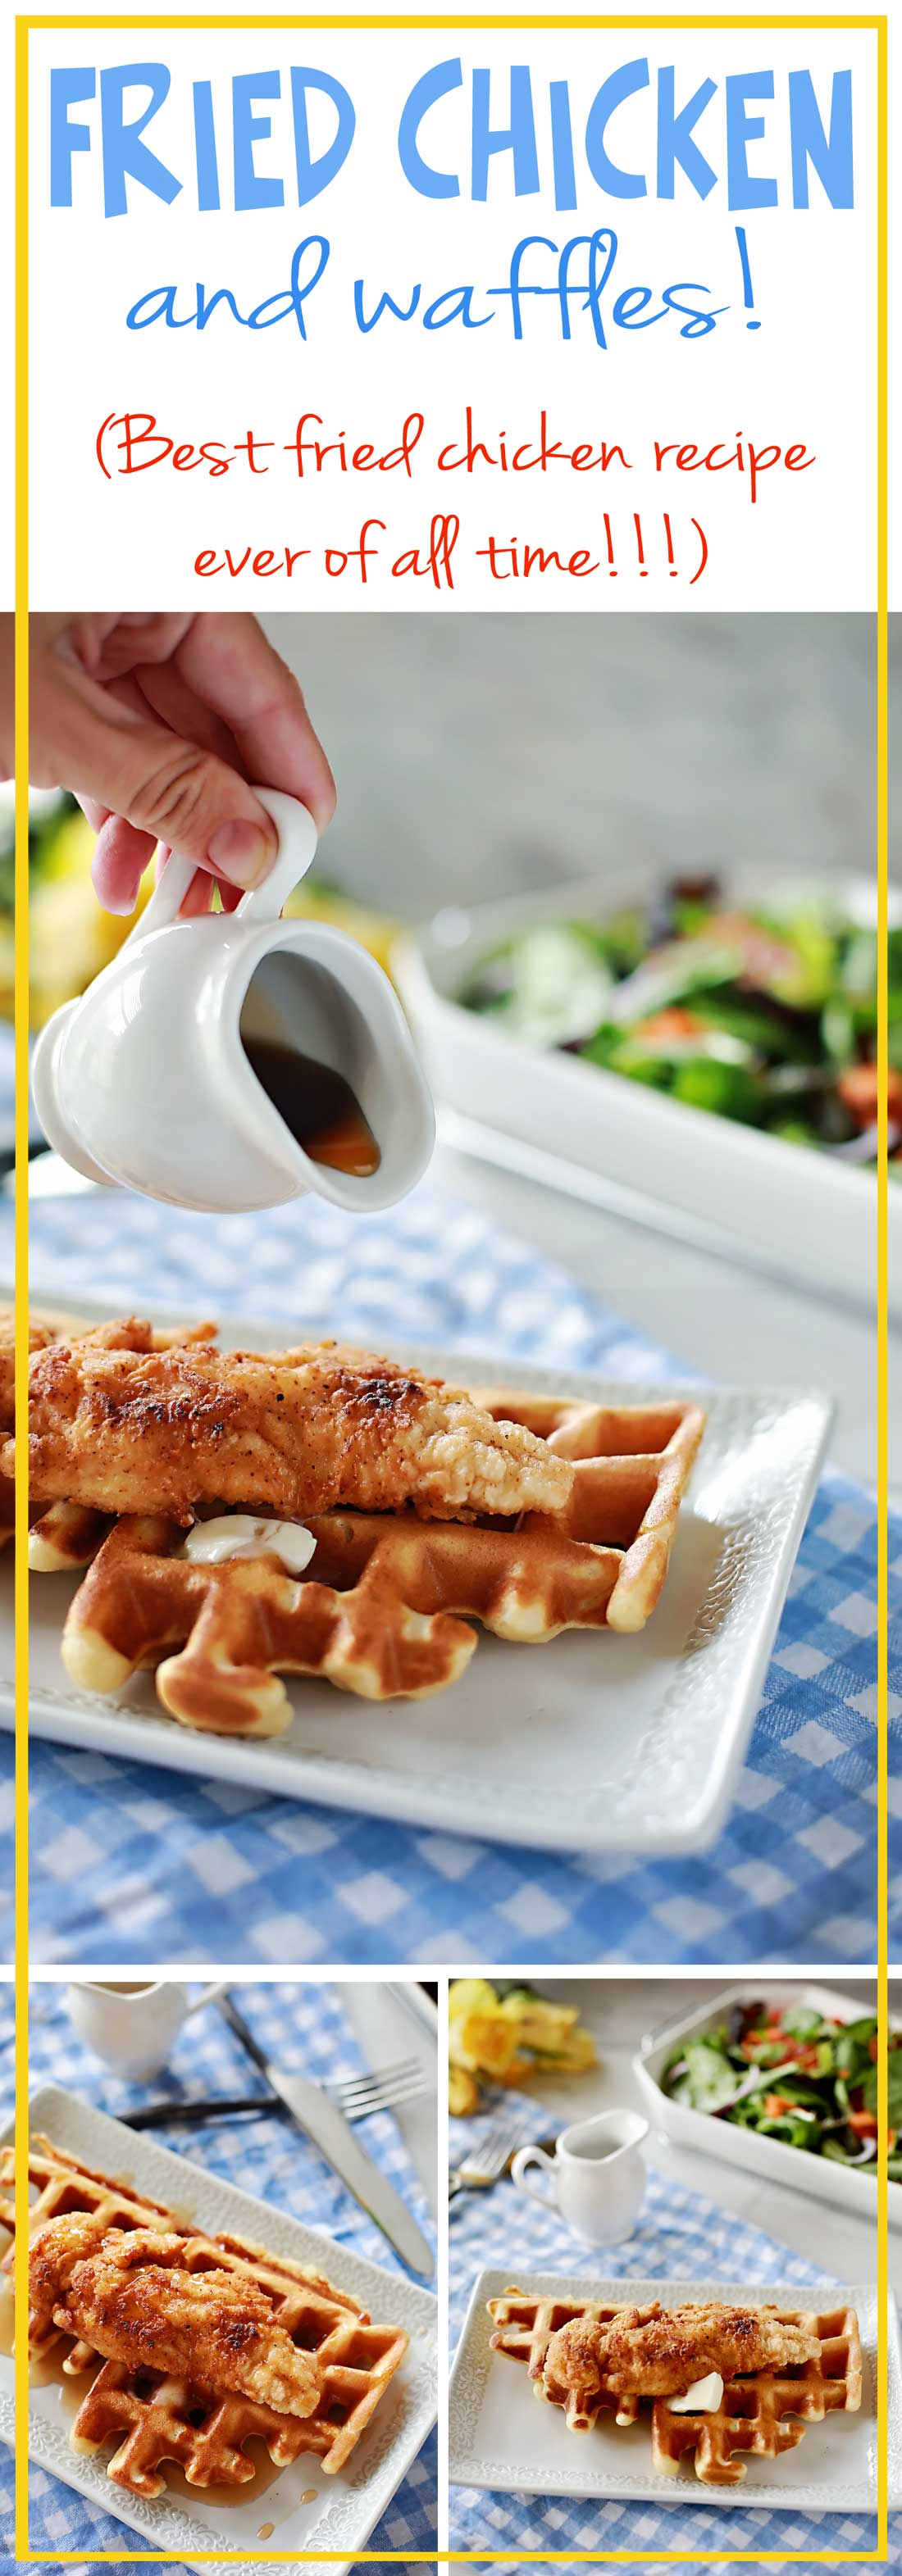 CHICKEN AND WAFFLES!!!!! Both of these recipes were AMAZING!!!! Fried chicken recipe by Flirting with Flavor.